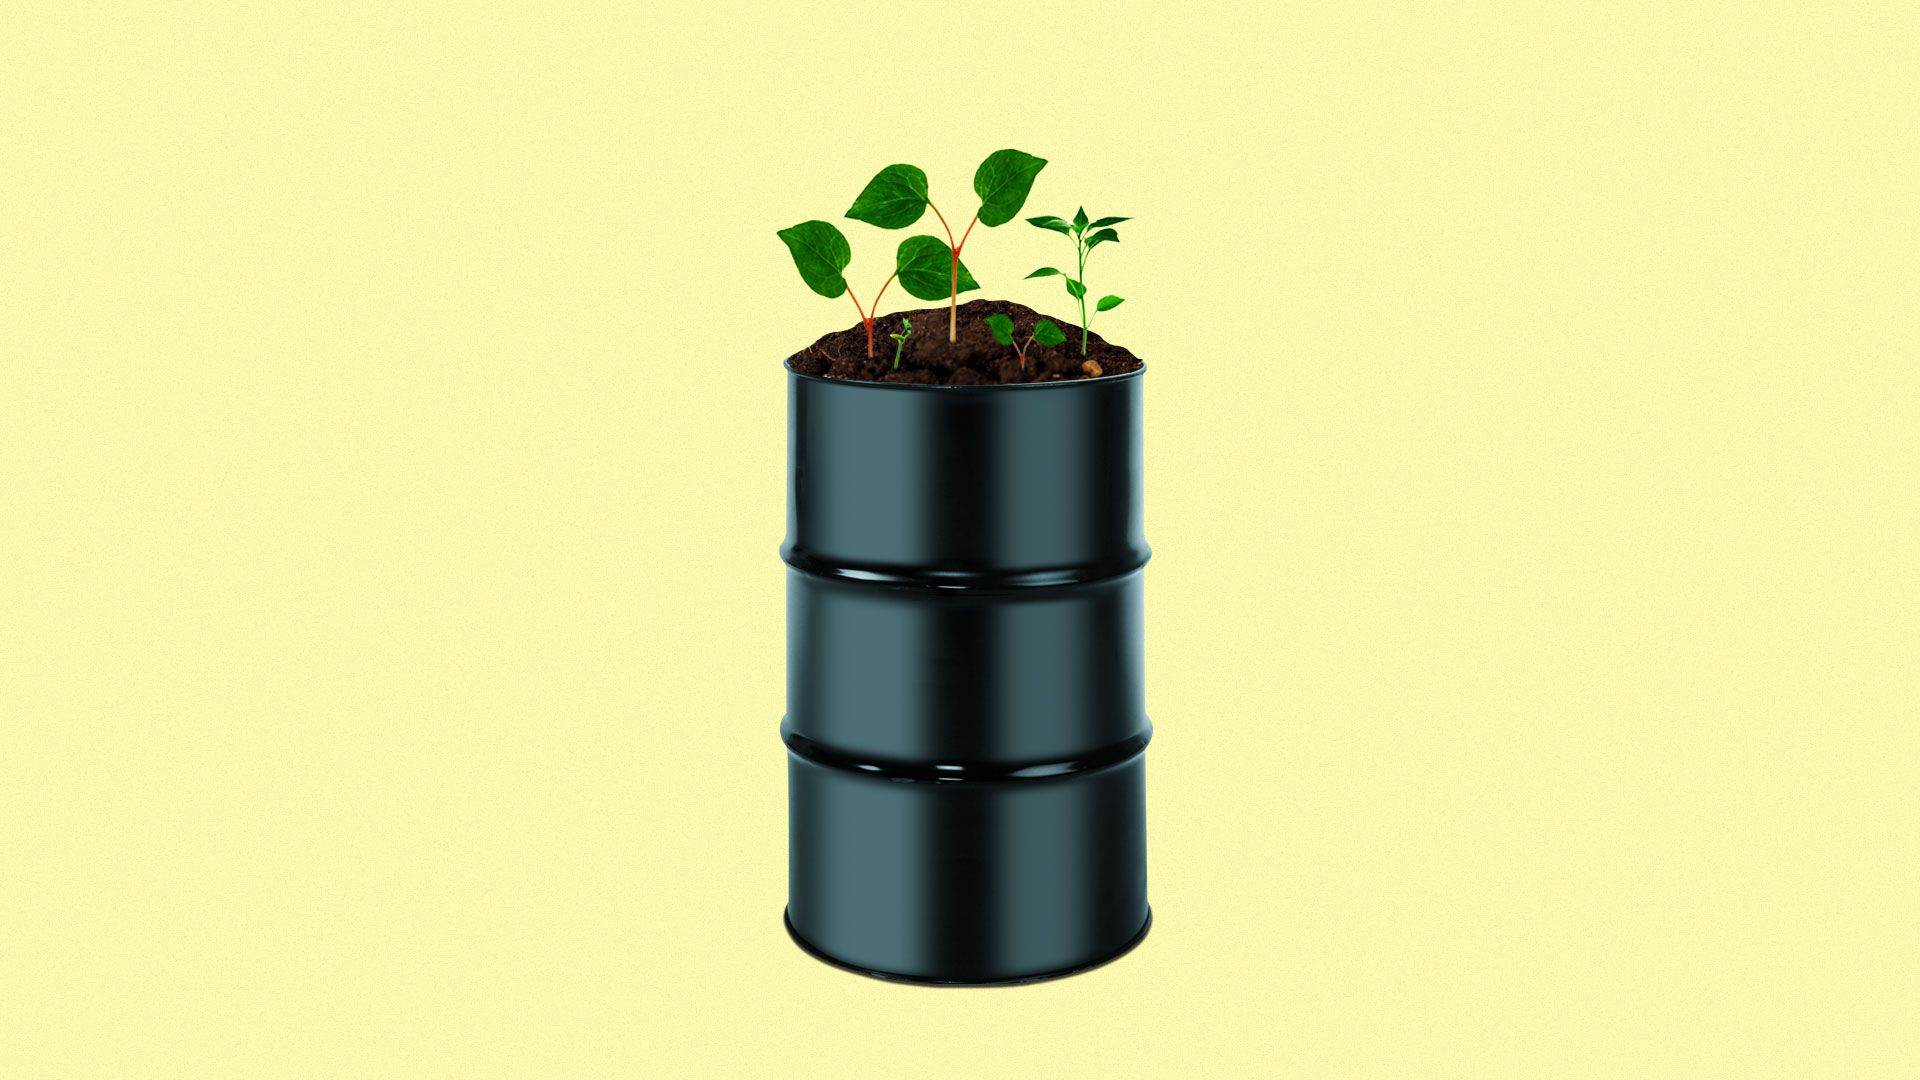 Illustration of oil barrel with plants growing on top of lid.